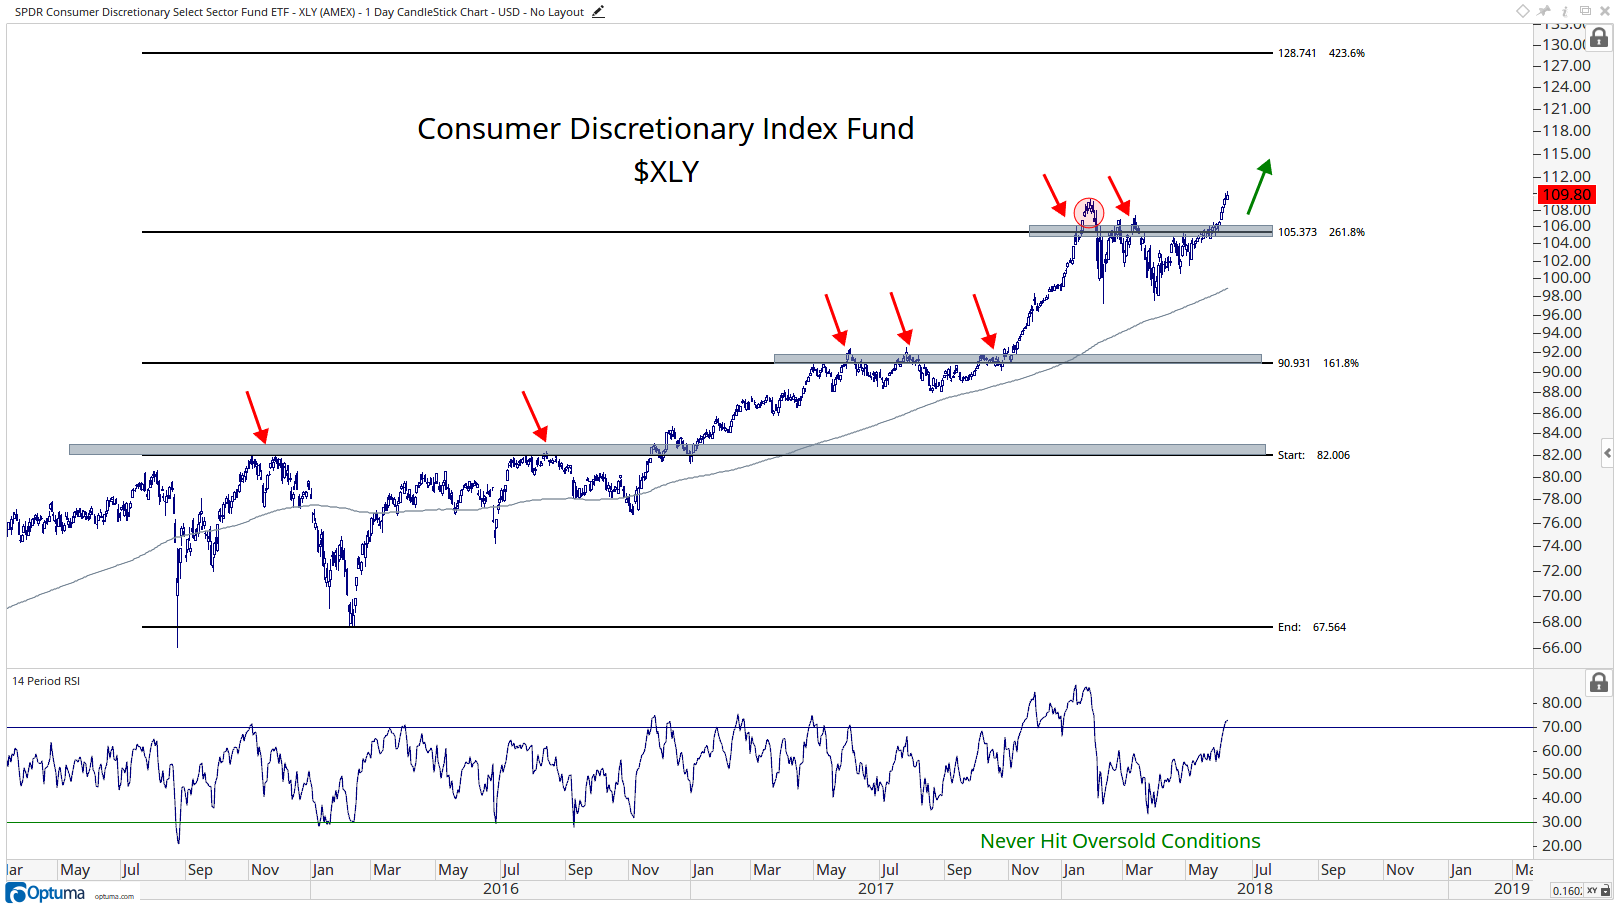 Consumer Discretionary Stocks Are Breaking Out! - All Star